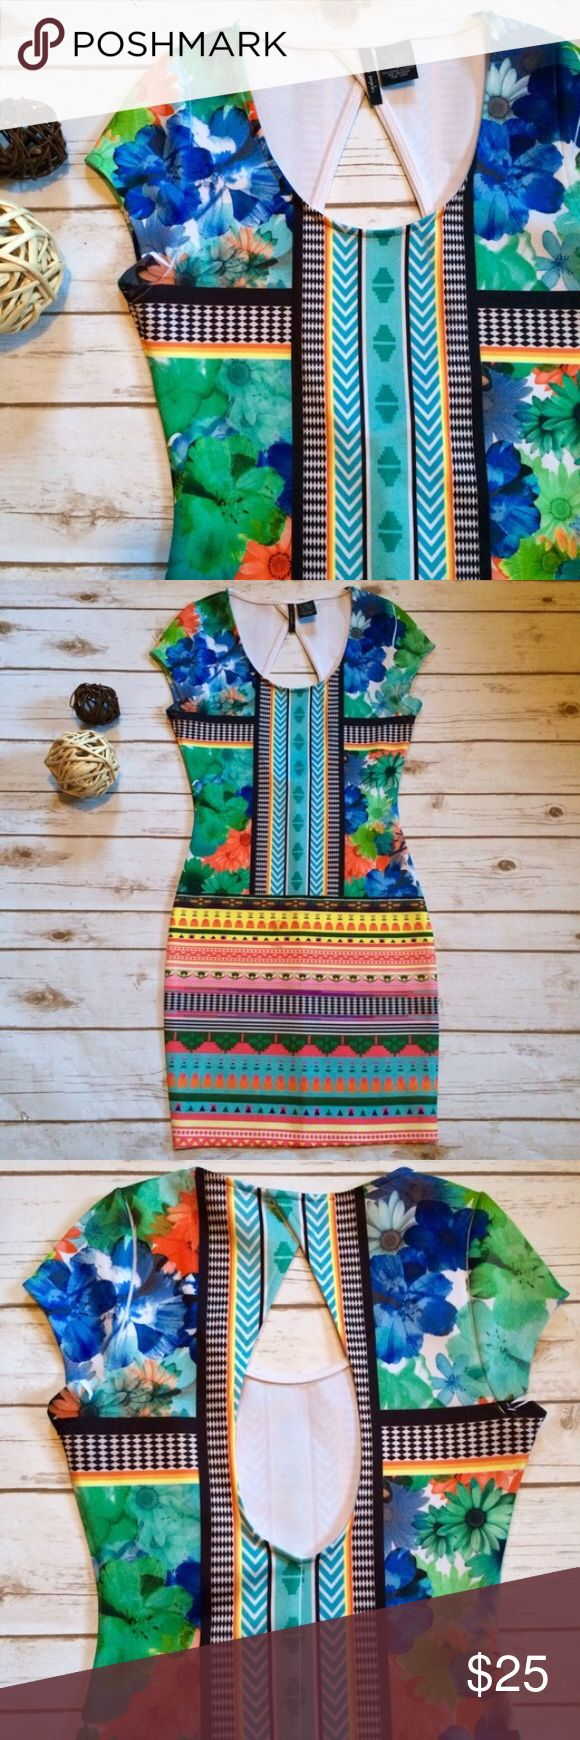 Floral Aztec Print Body Con Dress NWOT - this dress is in excellent condition! It is tight, stretchy, colorful, comfortable, and perfect for warm weather ☀️ The back features a cut out design. Fire Los Angeles Dresses Mini